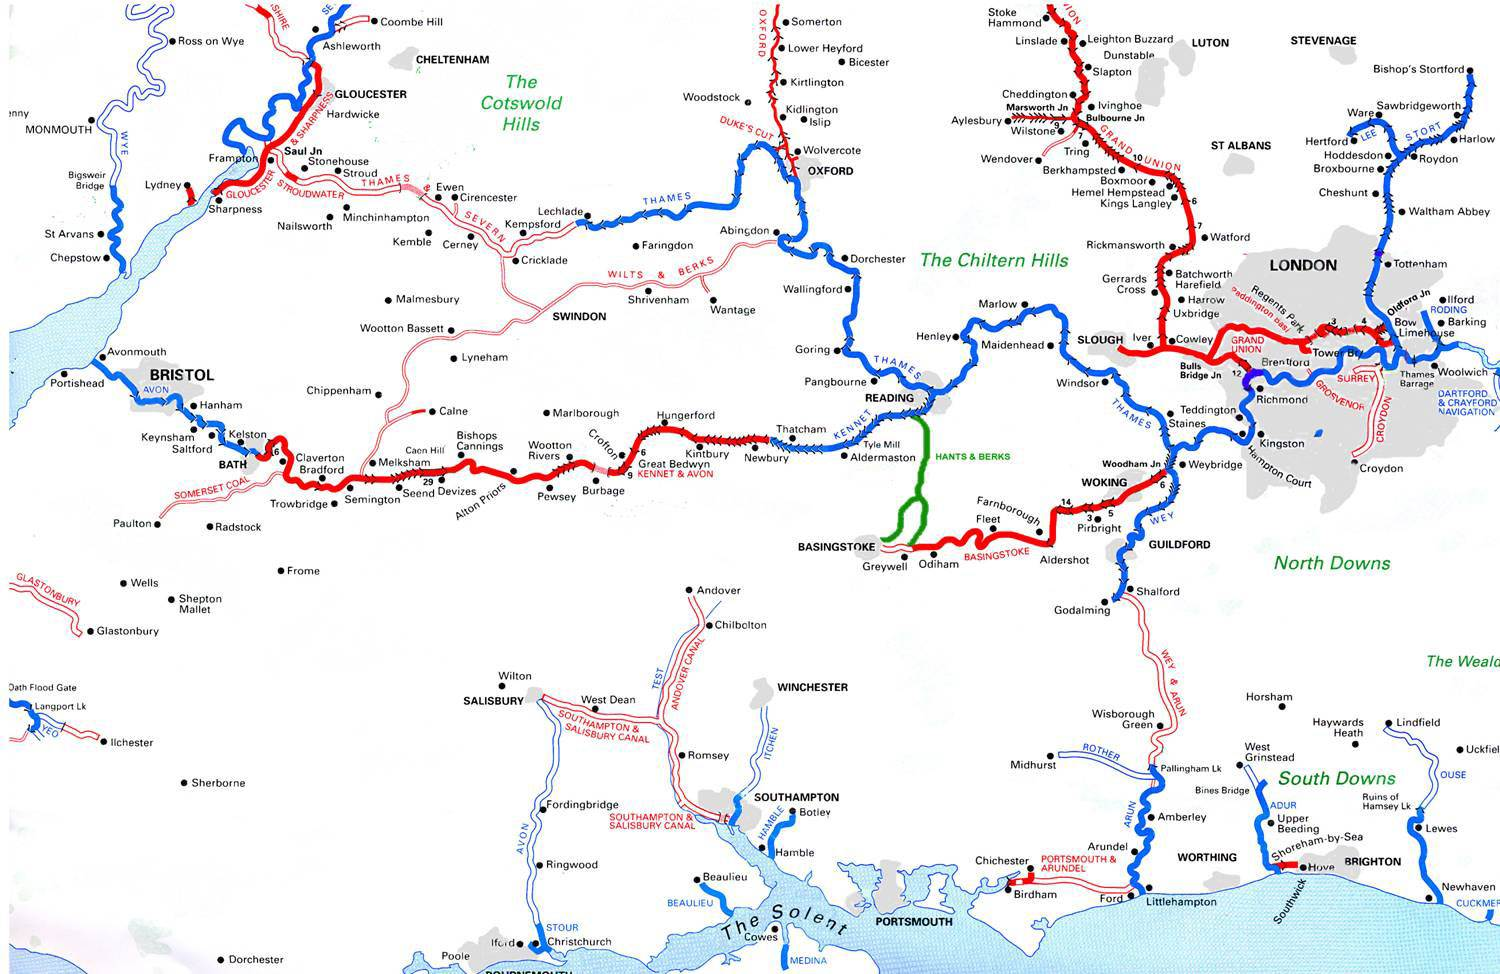 Map Of Canals In England Pictures to Pin on Pinterest - PinsDaddy